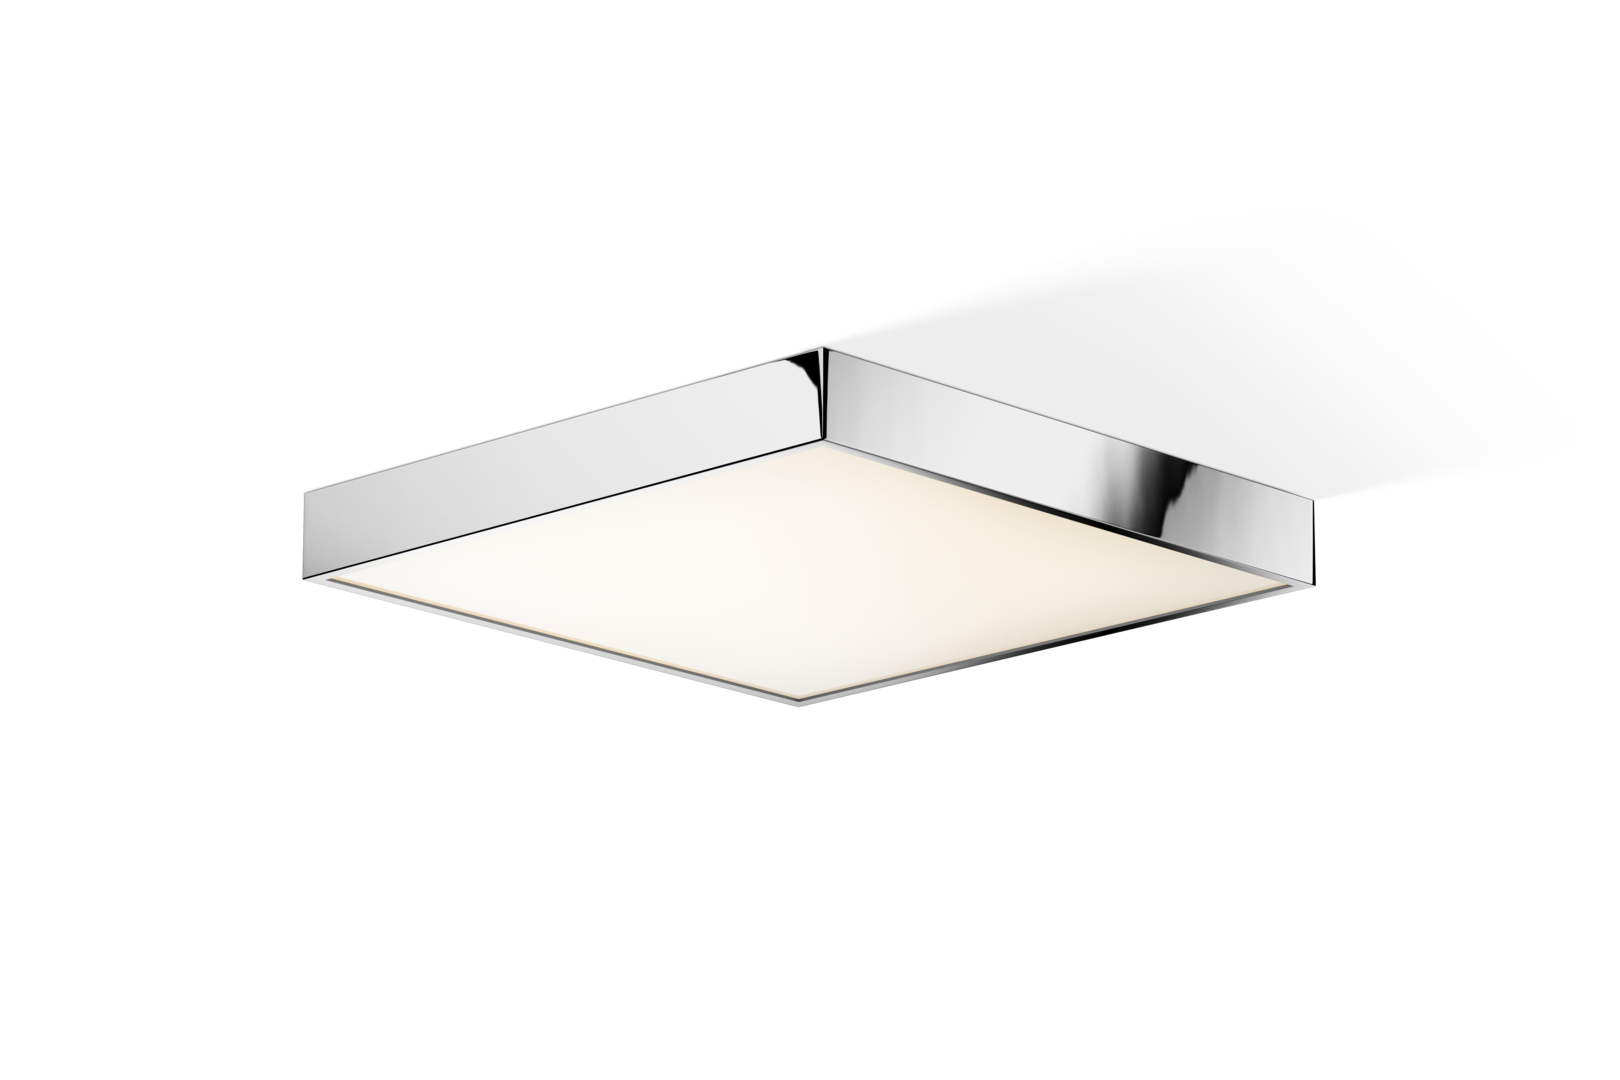 Decor Walther 0218900 DW-Cut 40 N LED Ceiling Light - Chrome